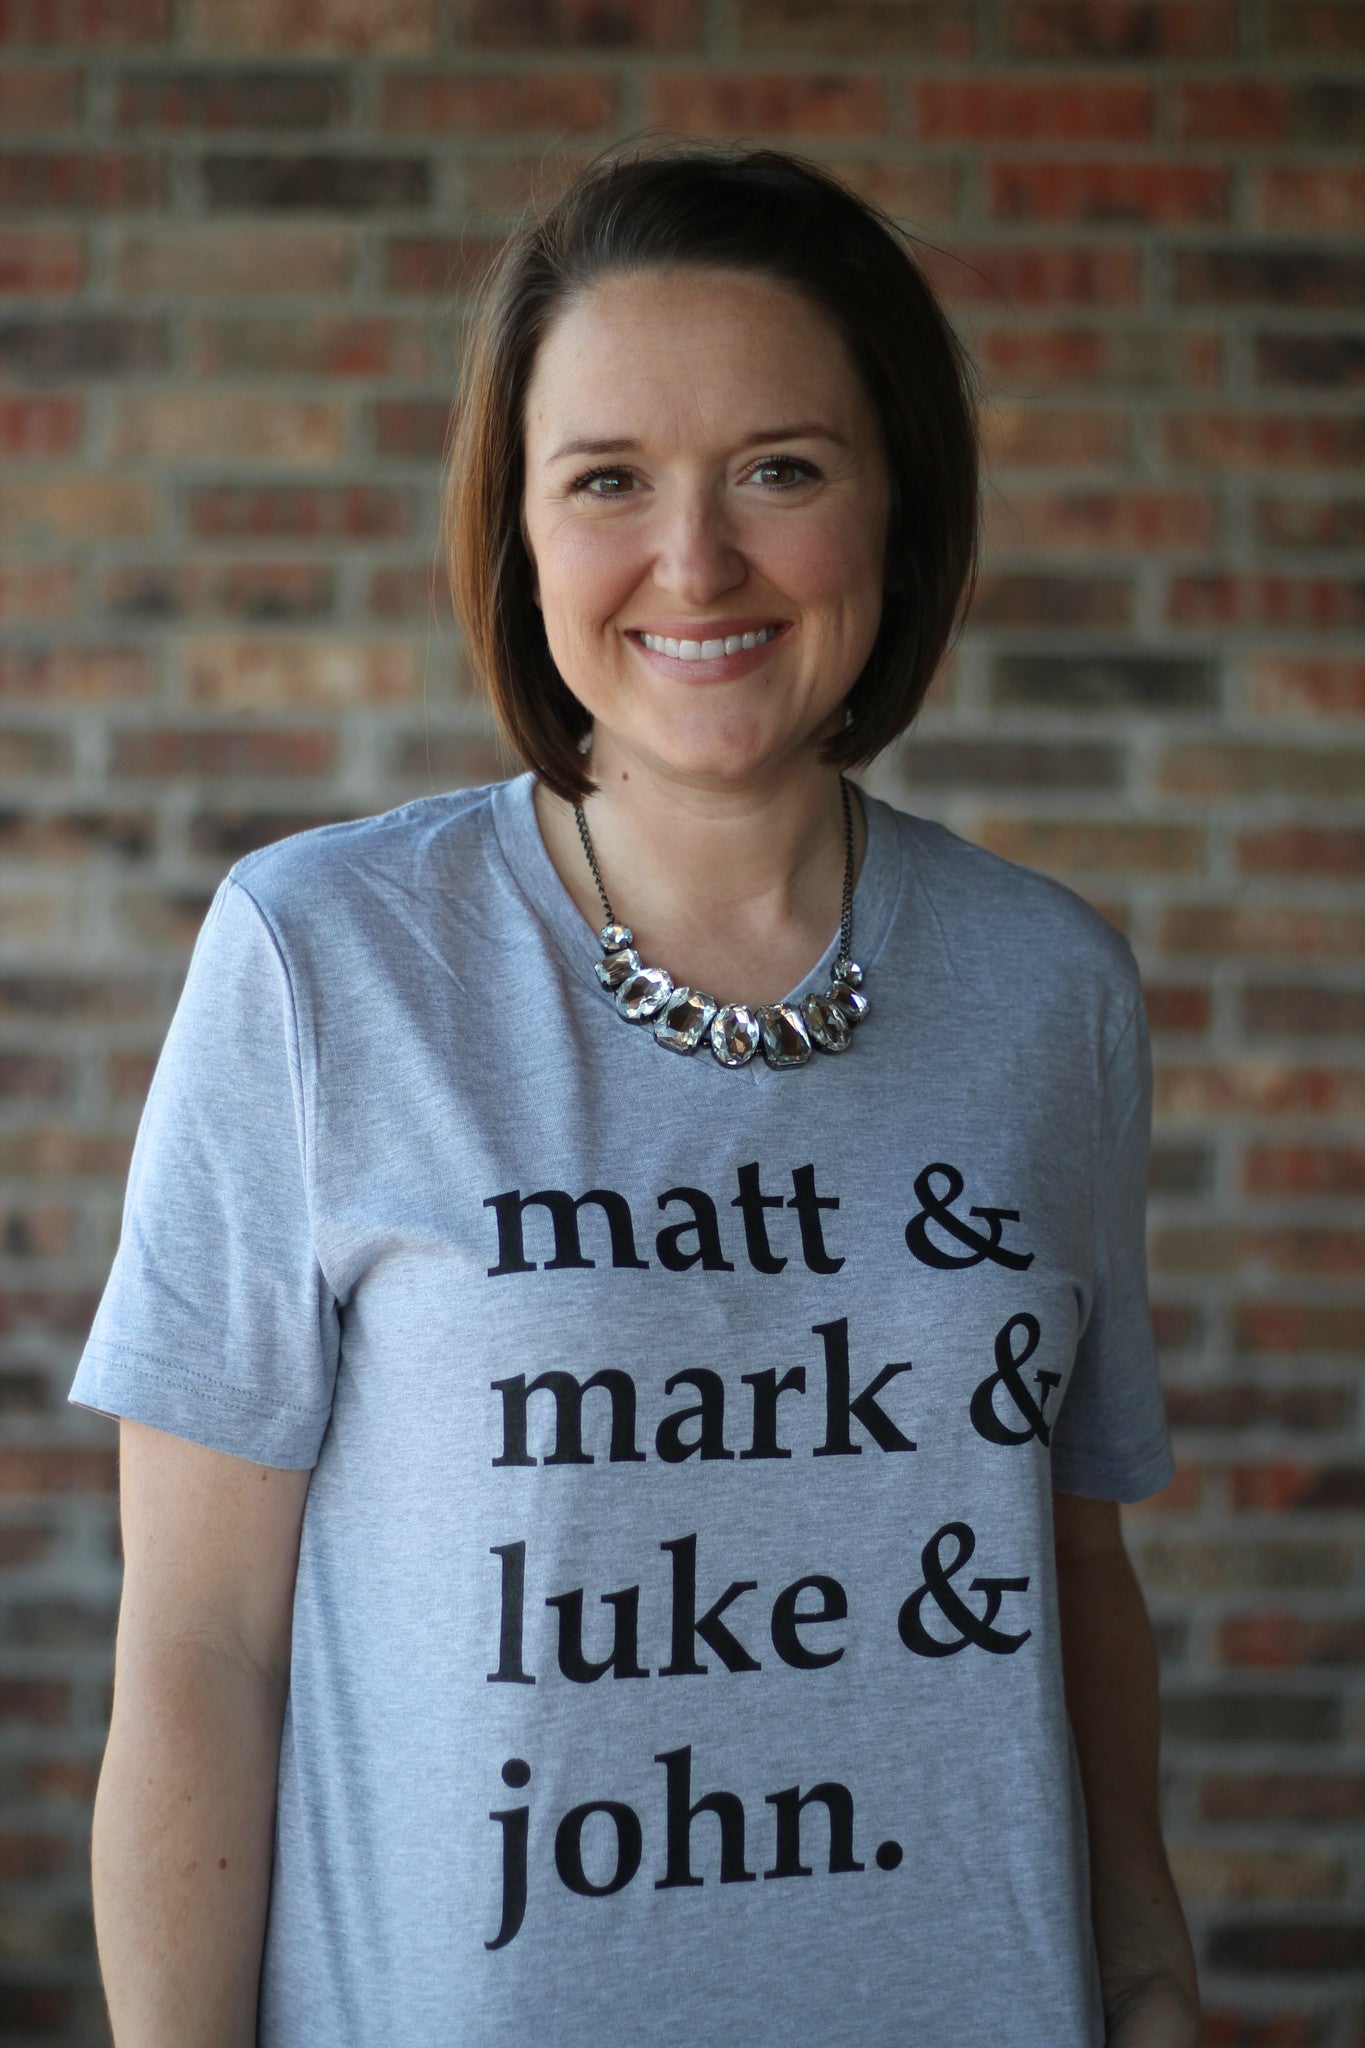 Matt, Mark, Luke & John Vneck Tee - 2 Colors